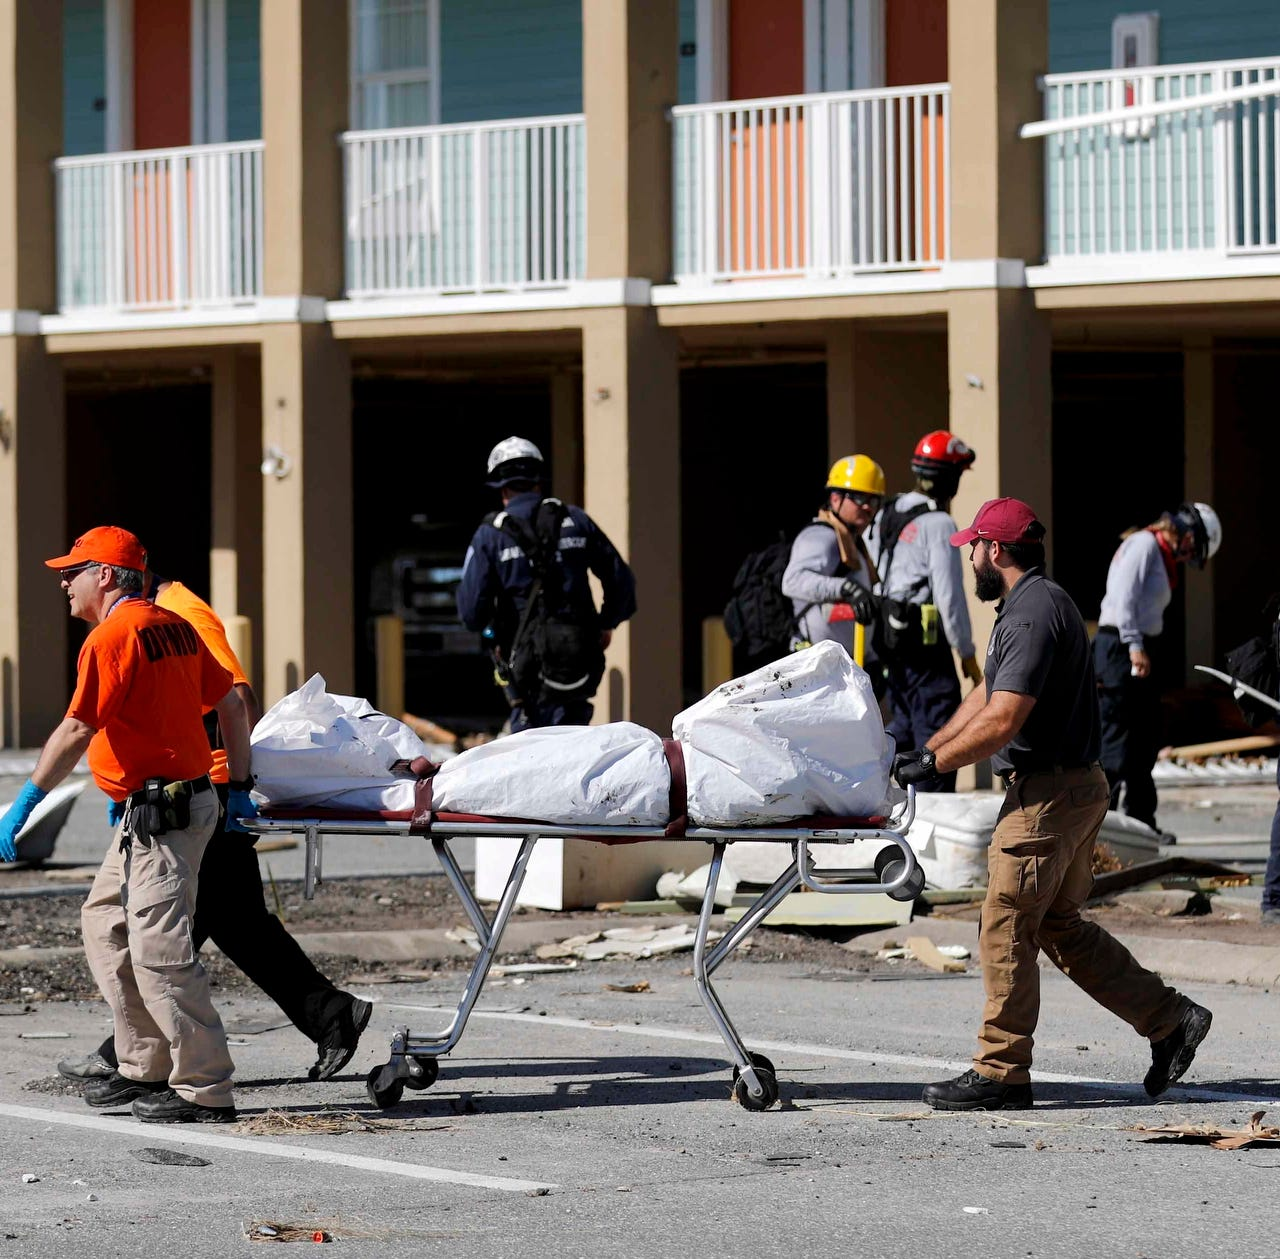 Hurricane Michael death toll rises to as many as 26 after more bodies found in Florida